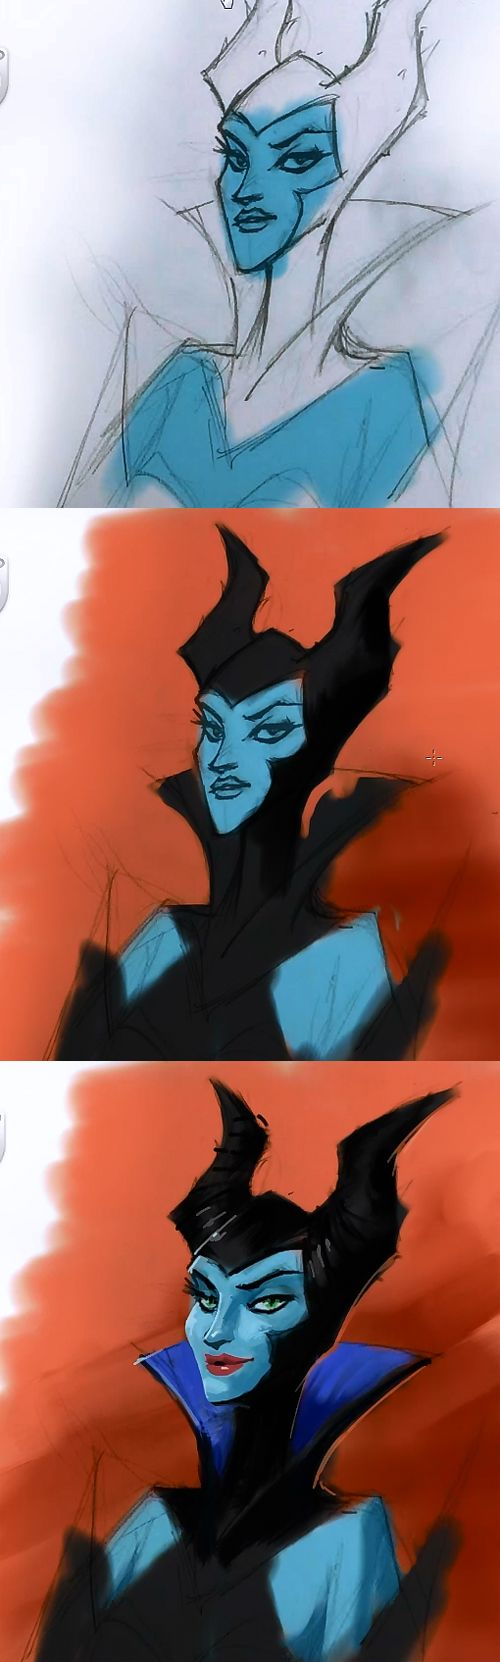 Painting Maleficent tutorial using Sketchbook Pro 6. This tutorial will teach you how to color and paint a character Maleficent. This is part two the series drawing and painting Maleficent character lesson from pencil drawing to finish illustration. This part,…